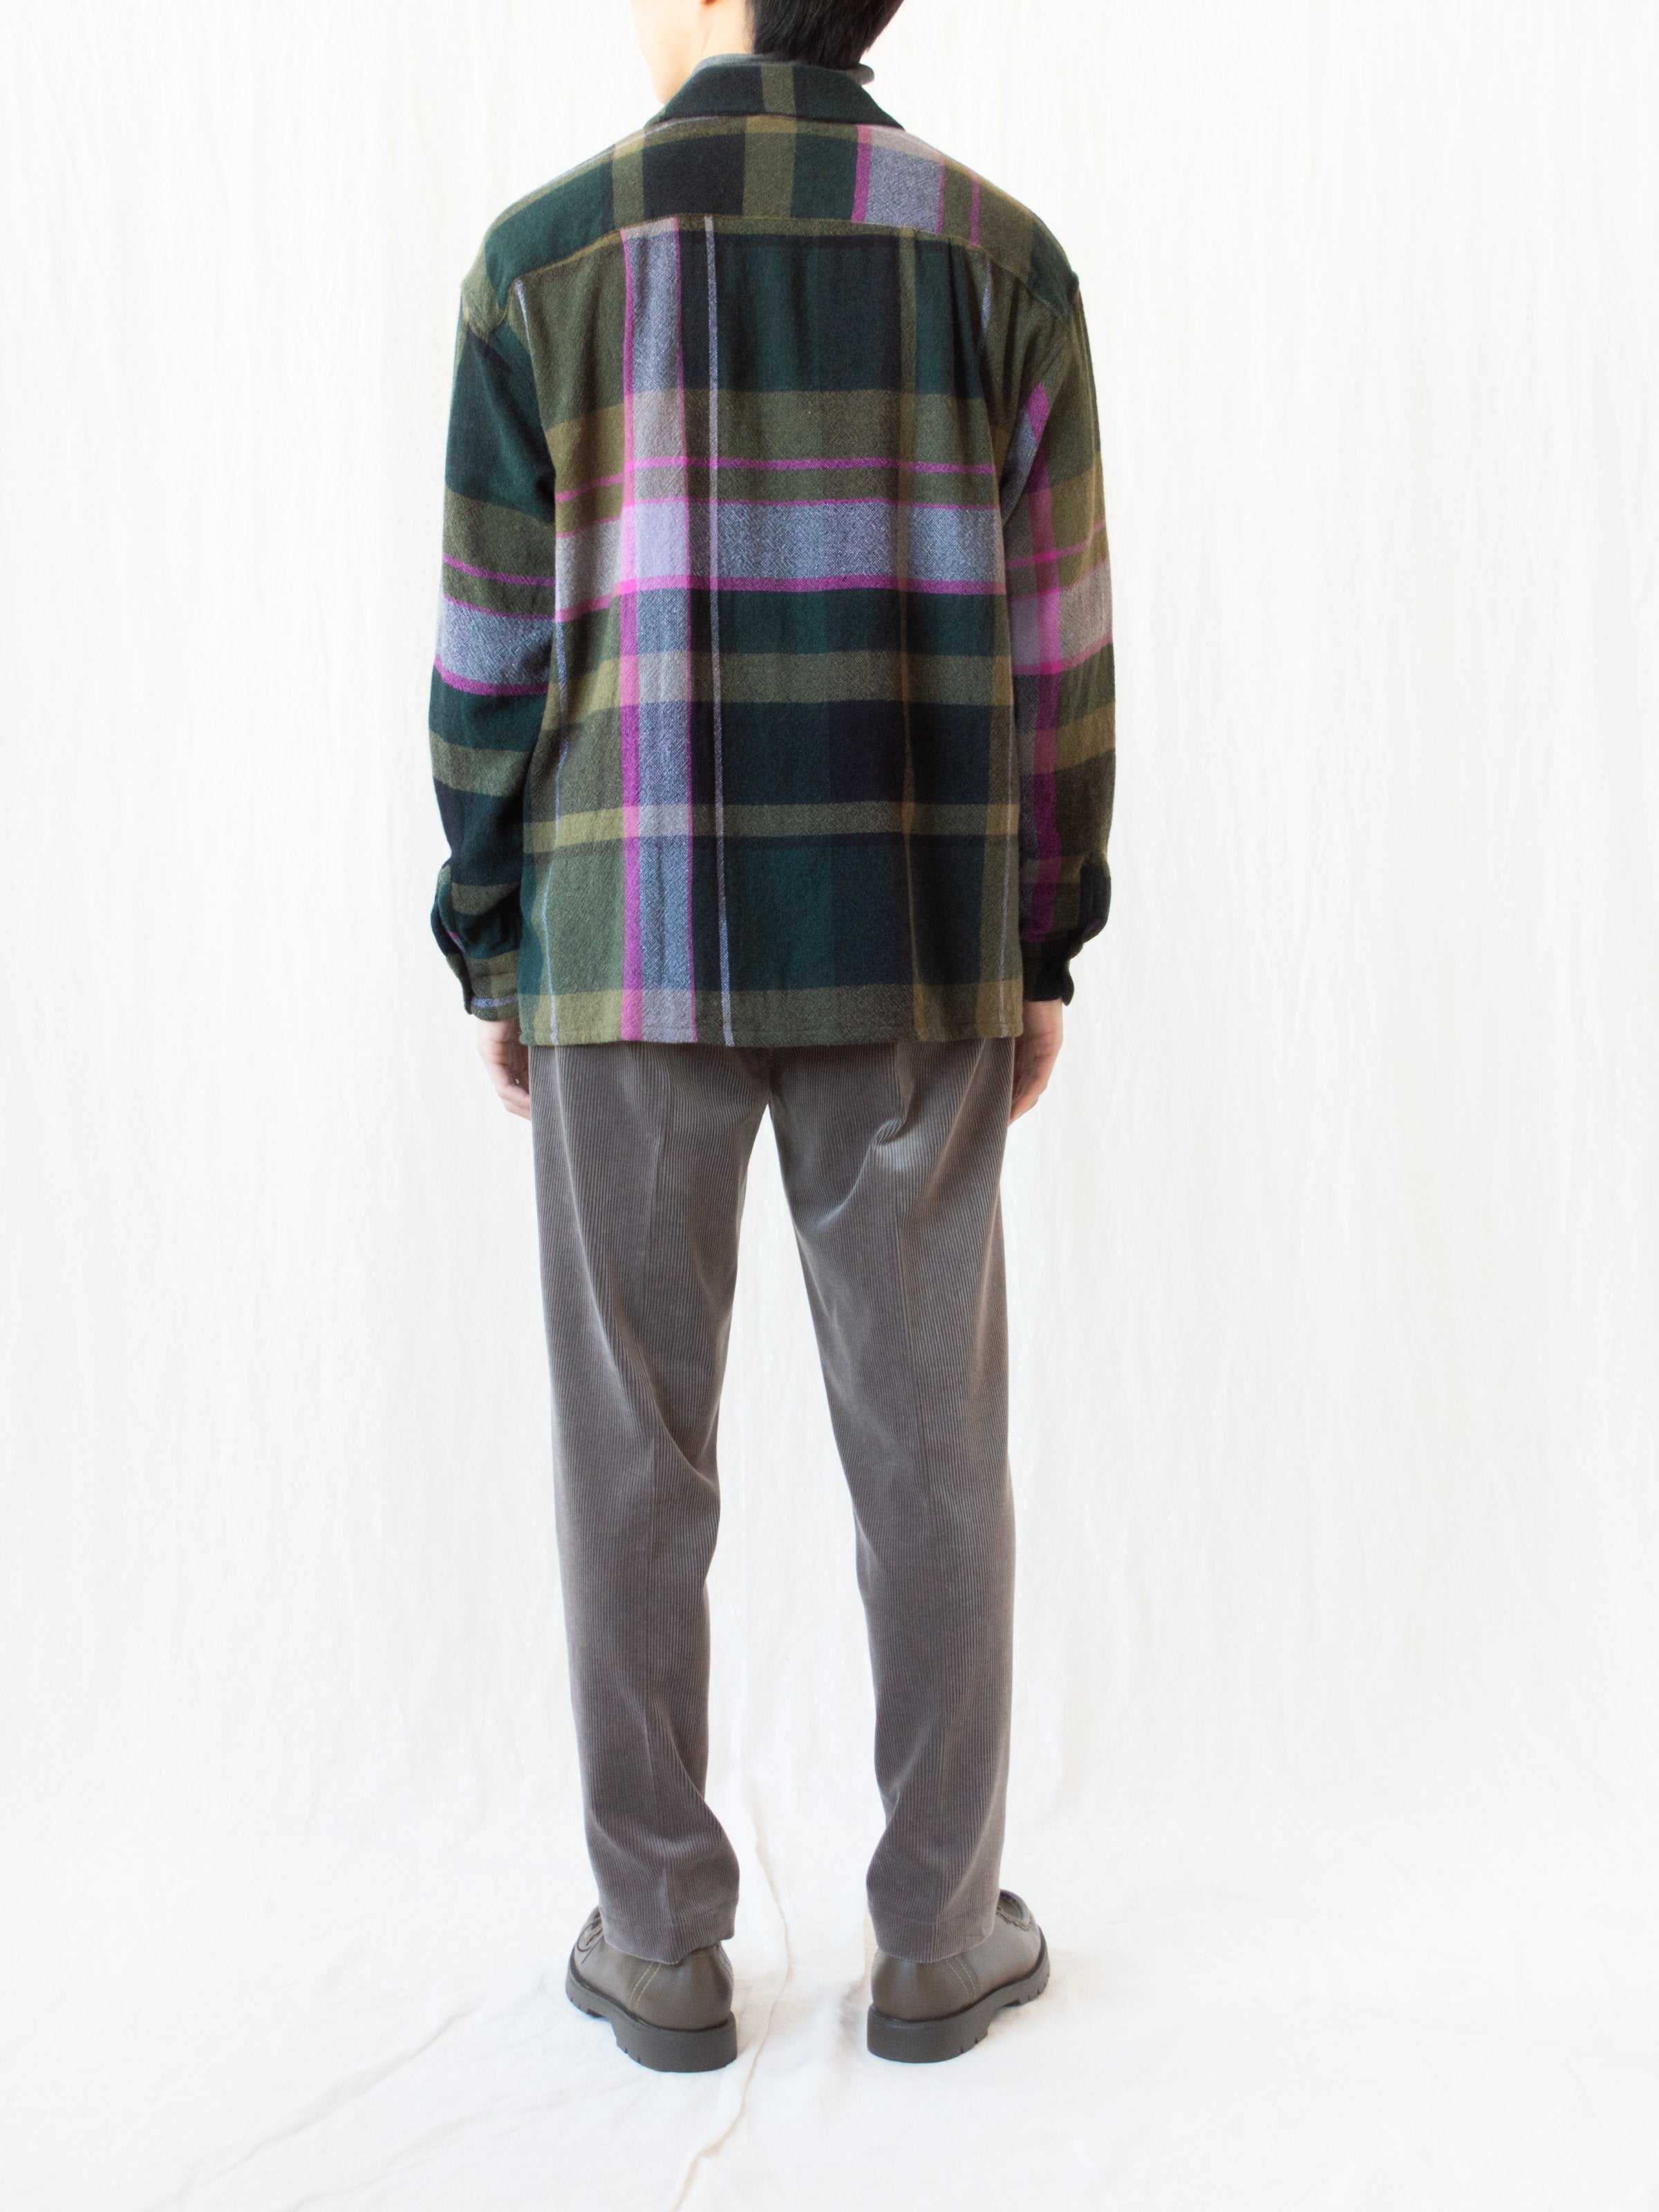 Namu Shop - ts(s) Round Flap Wool Shirt - Green Plaid